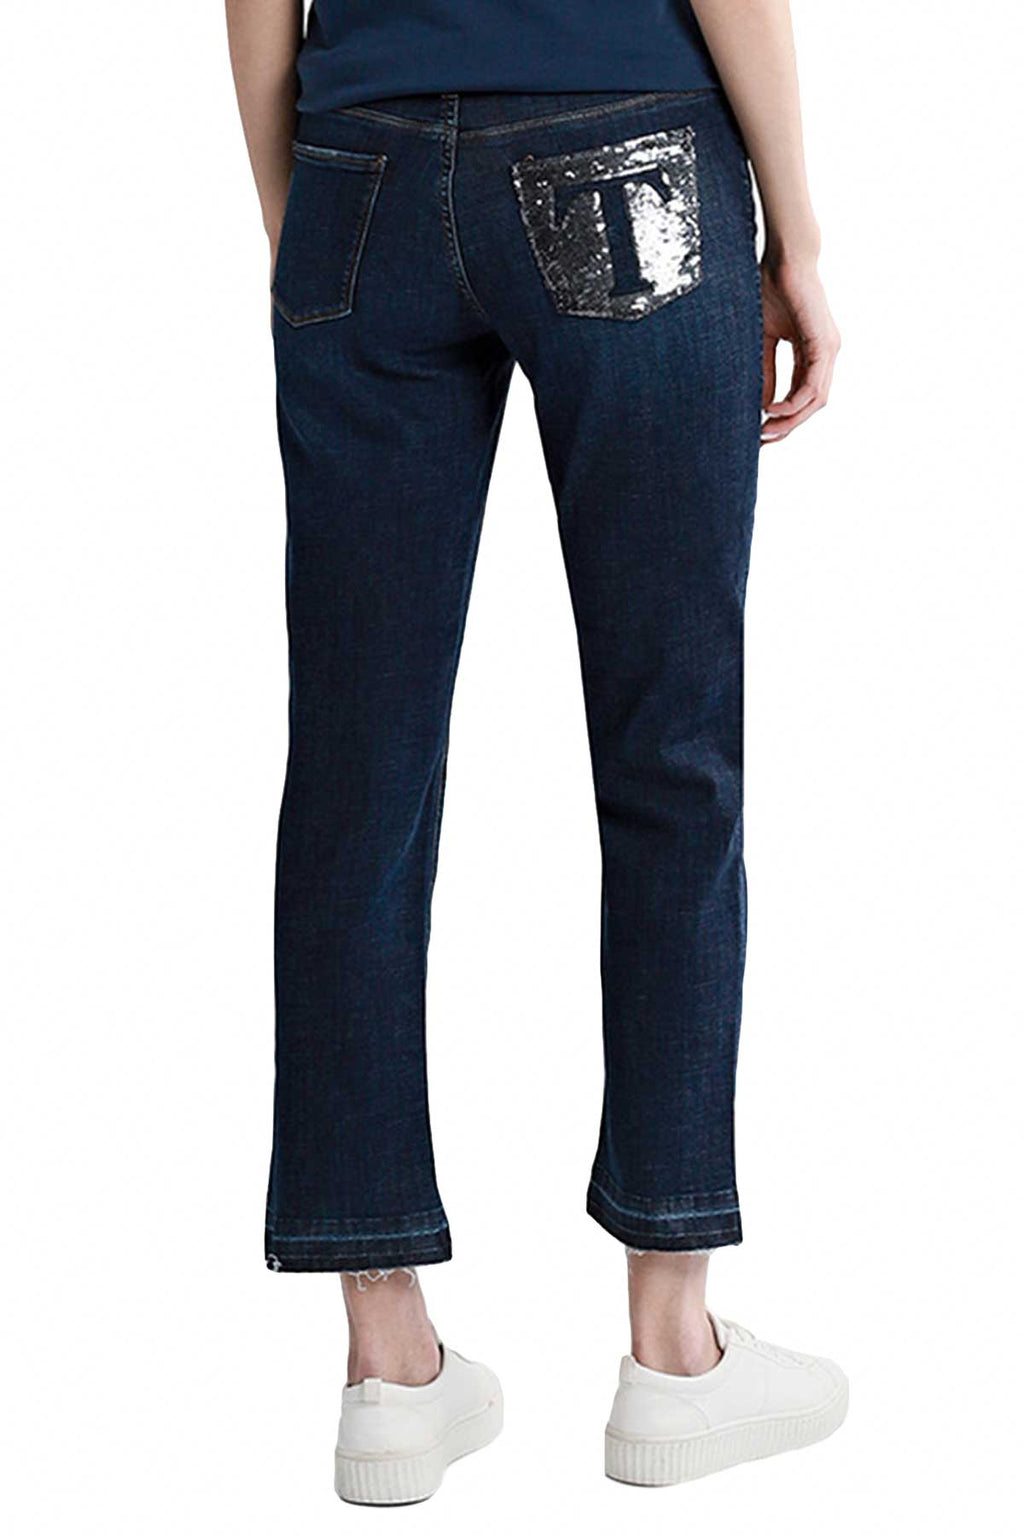 Trussardi Jeans Cropped Jeans-Libas Trendy Fashion Store